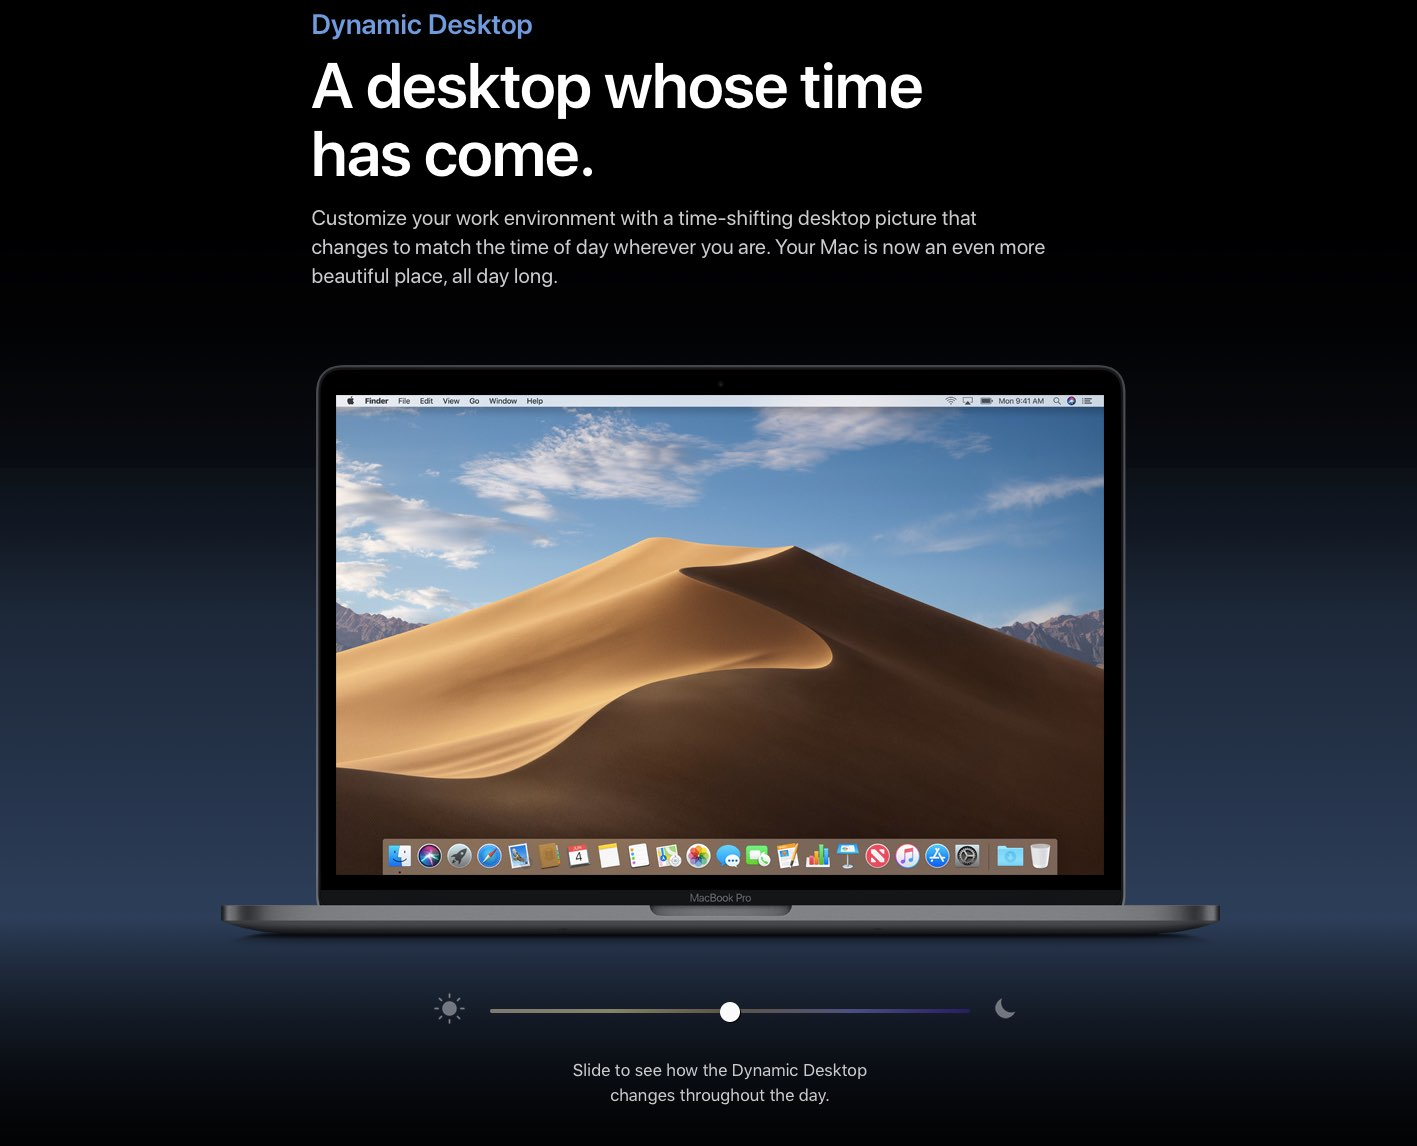 Dynamic Desktop in macOS Mojave brings a time-shifting picture to your desktop that changes to match the time of day